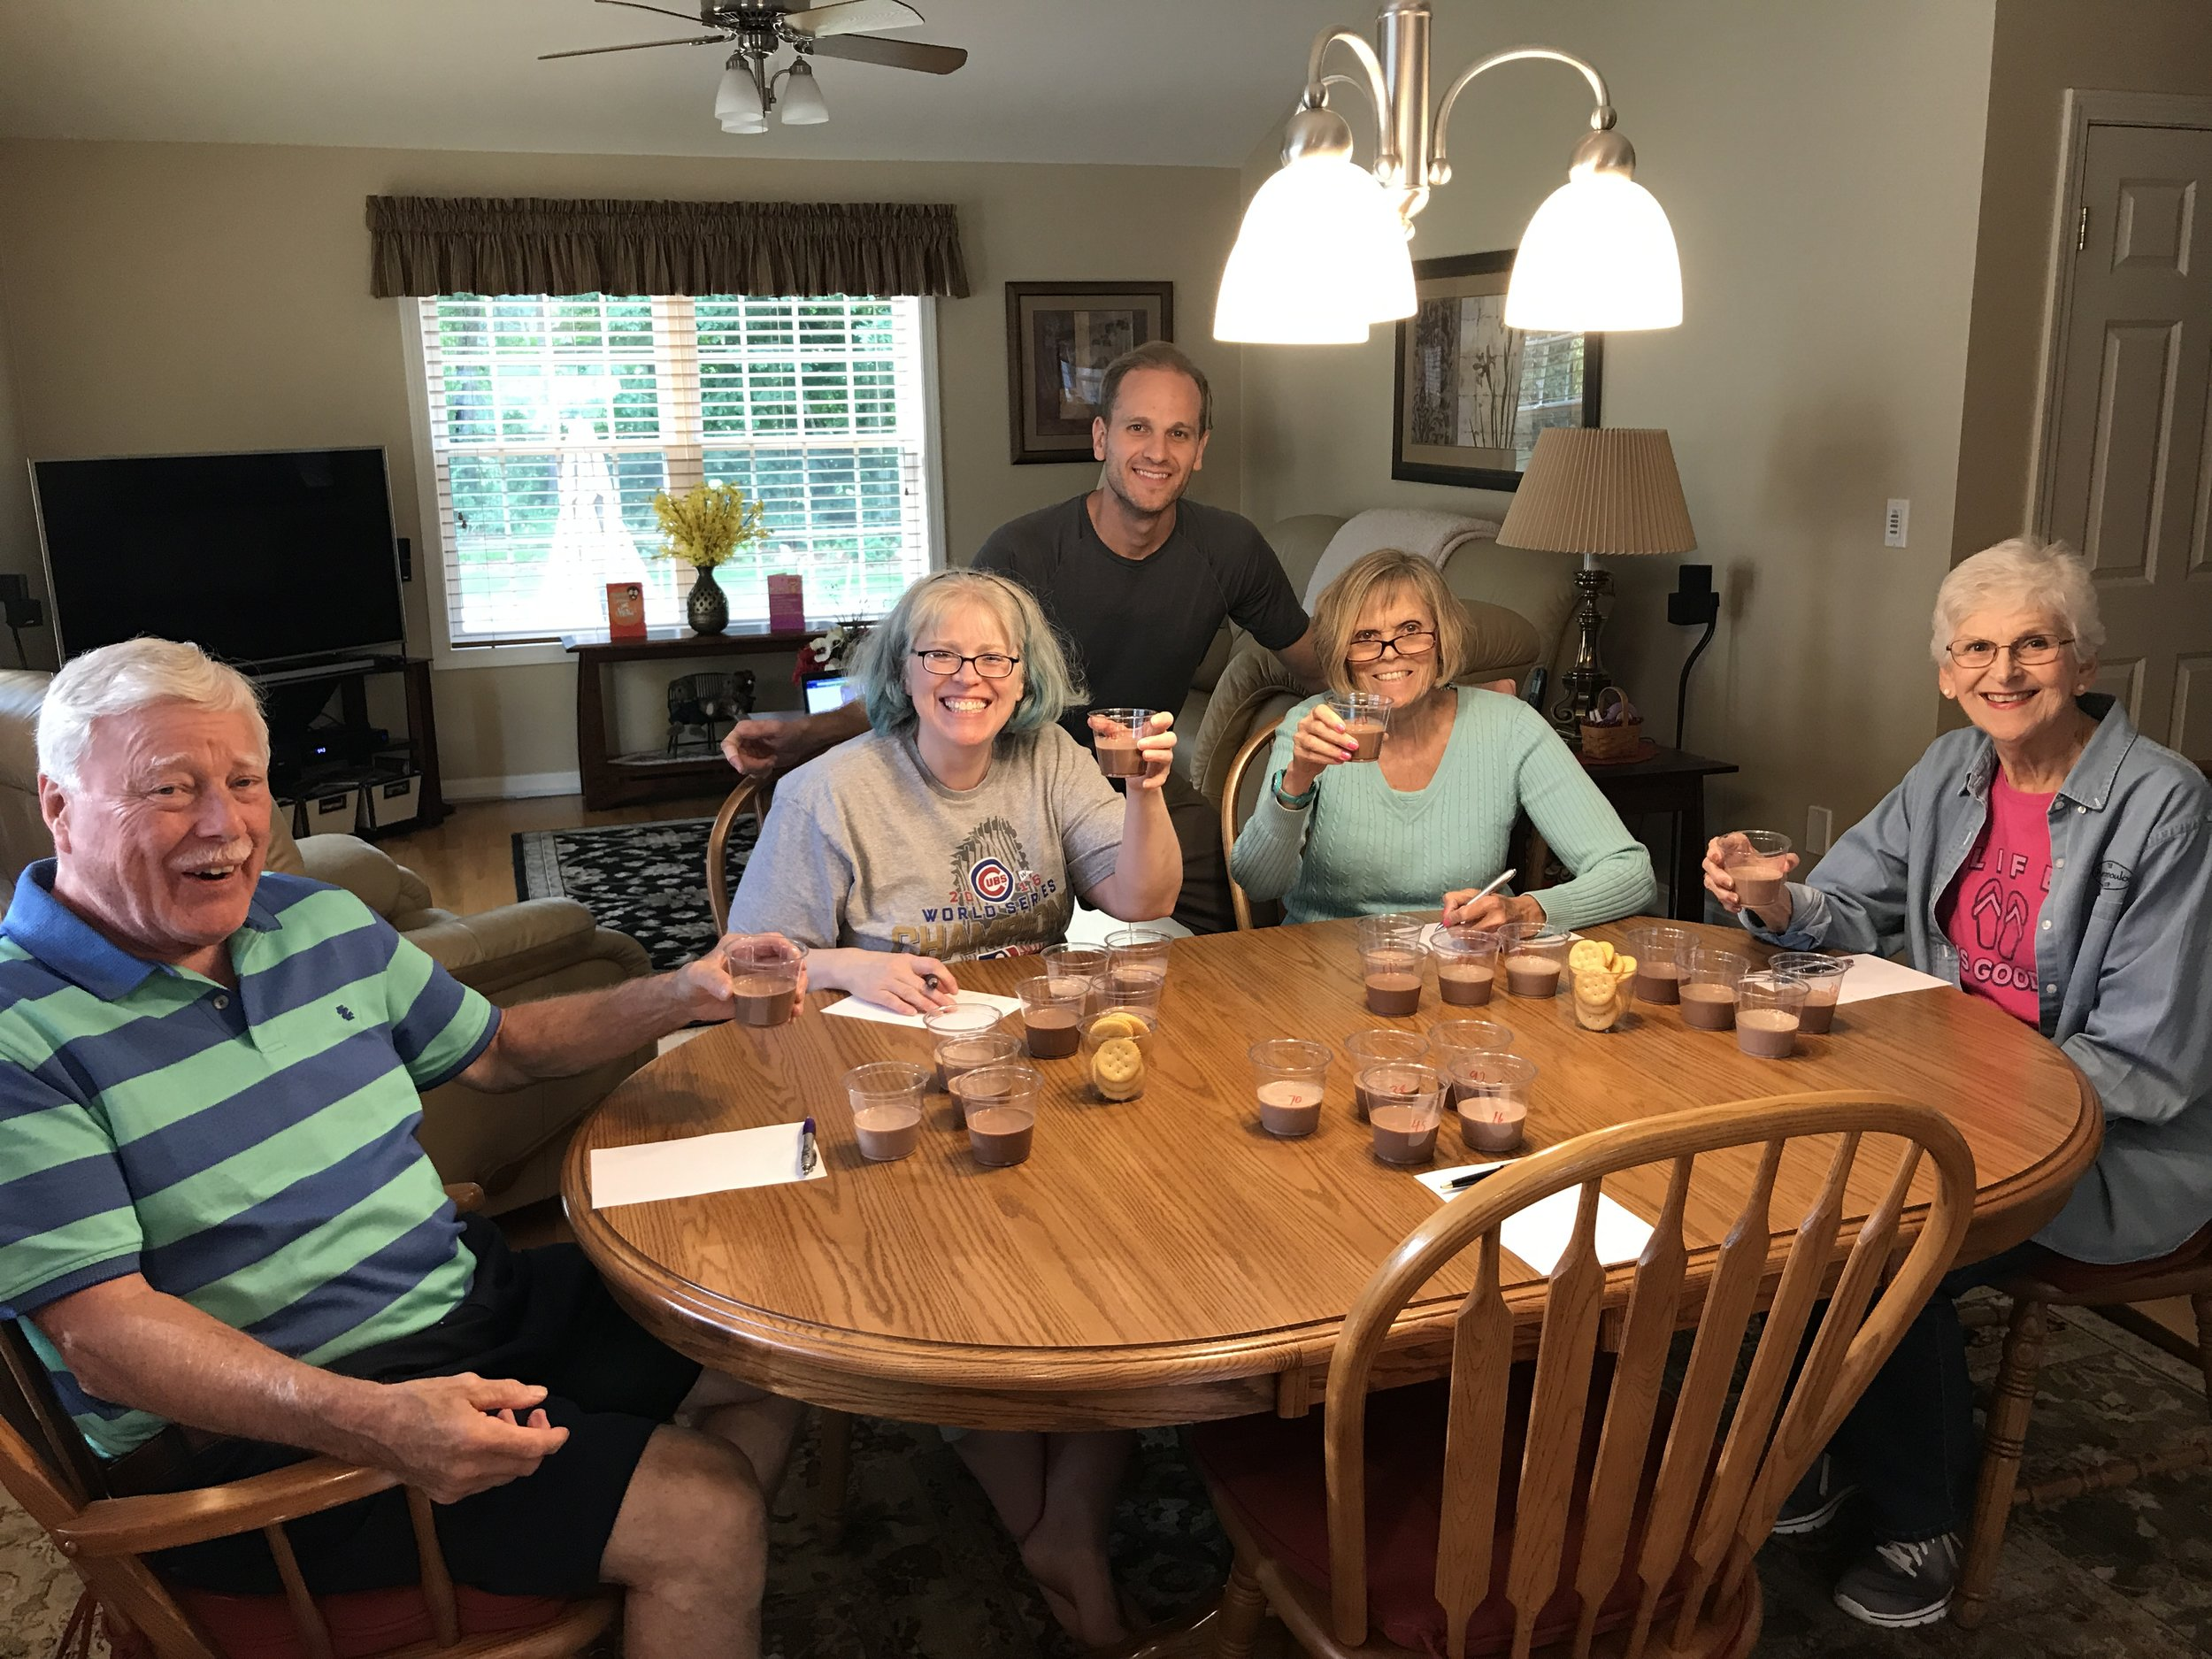 Chocolate milk taste test with Perry's relatives in New Hampshire.